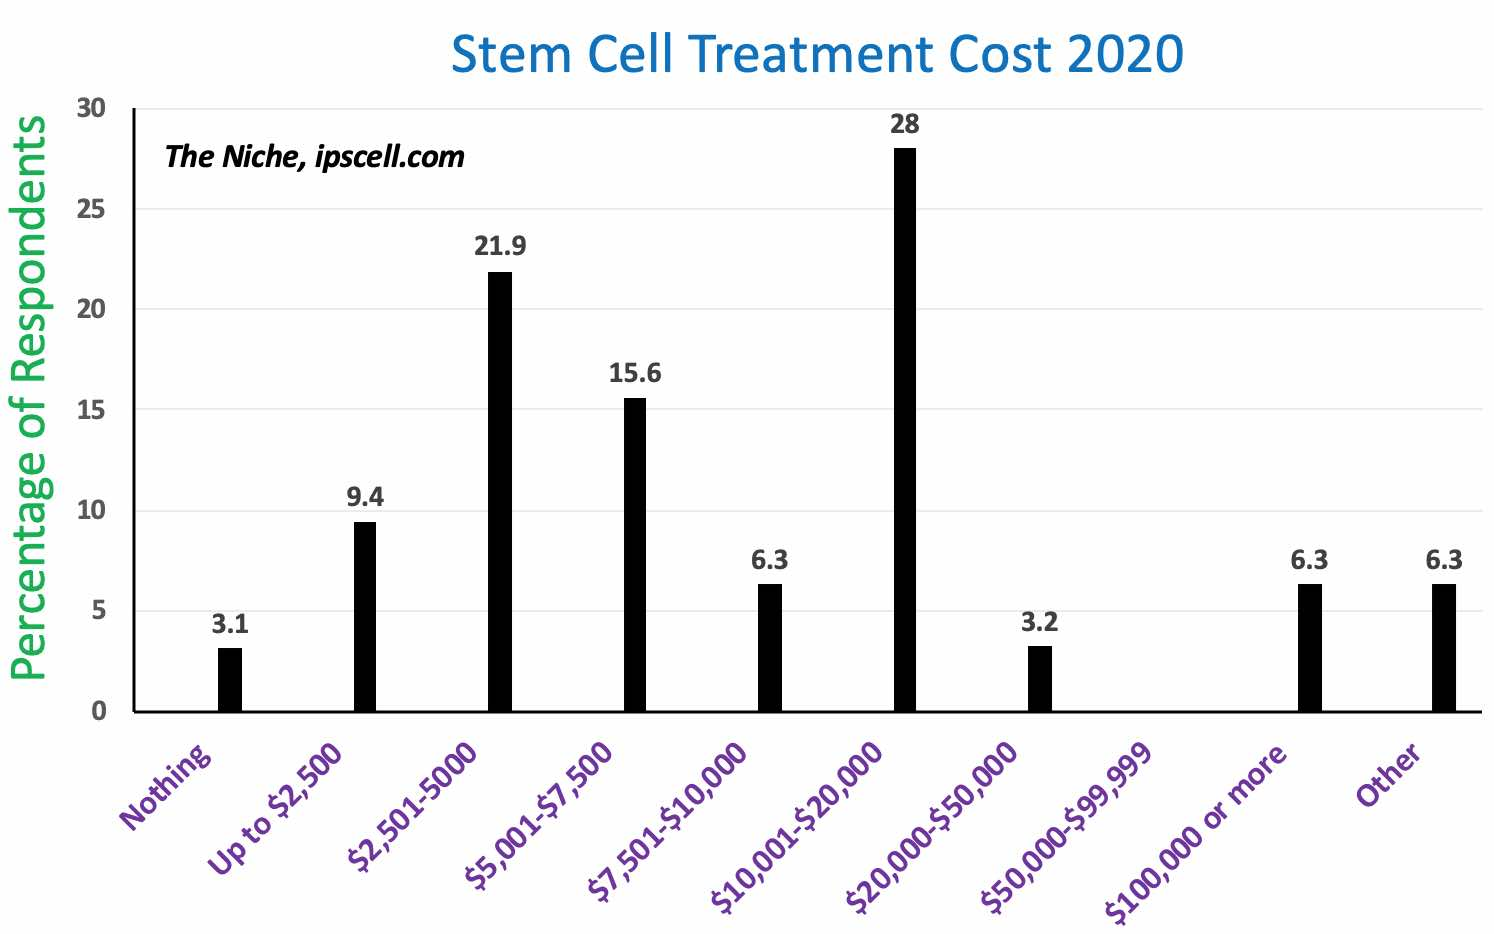 Stem Cell Treatment Cost 2020 The Niche